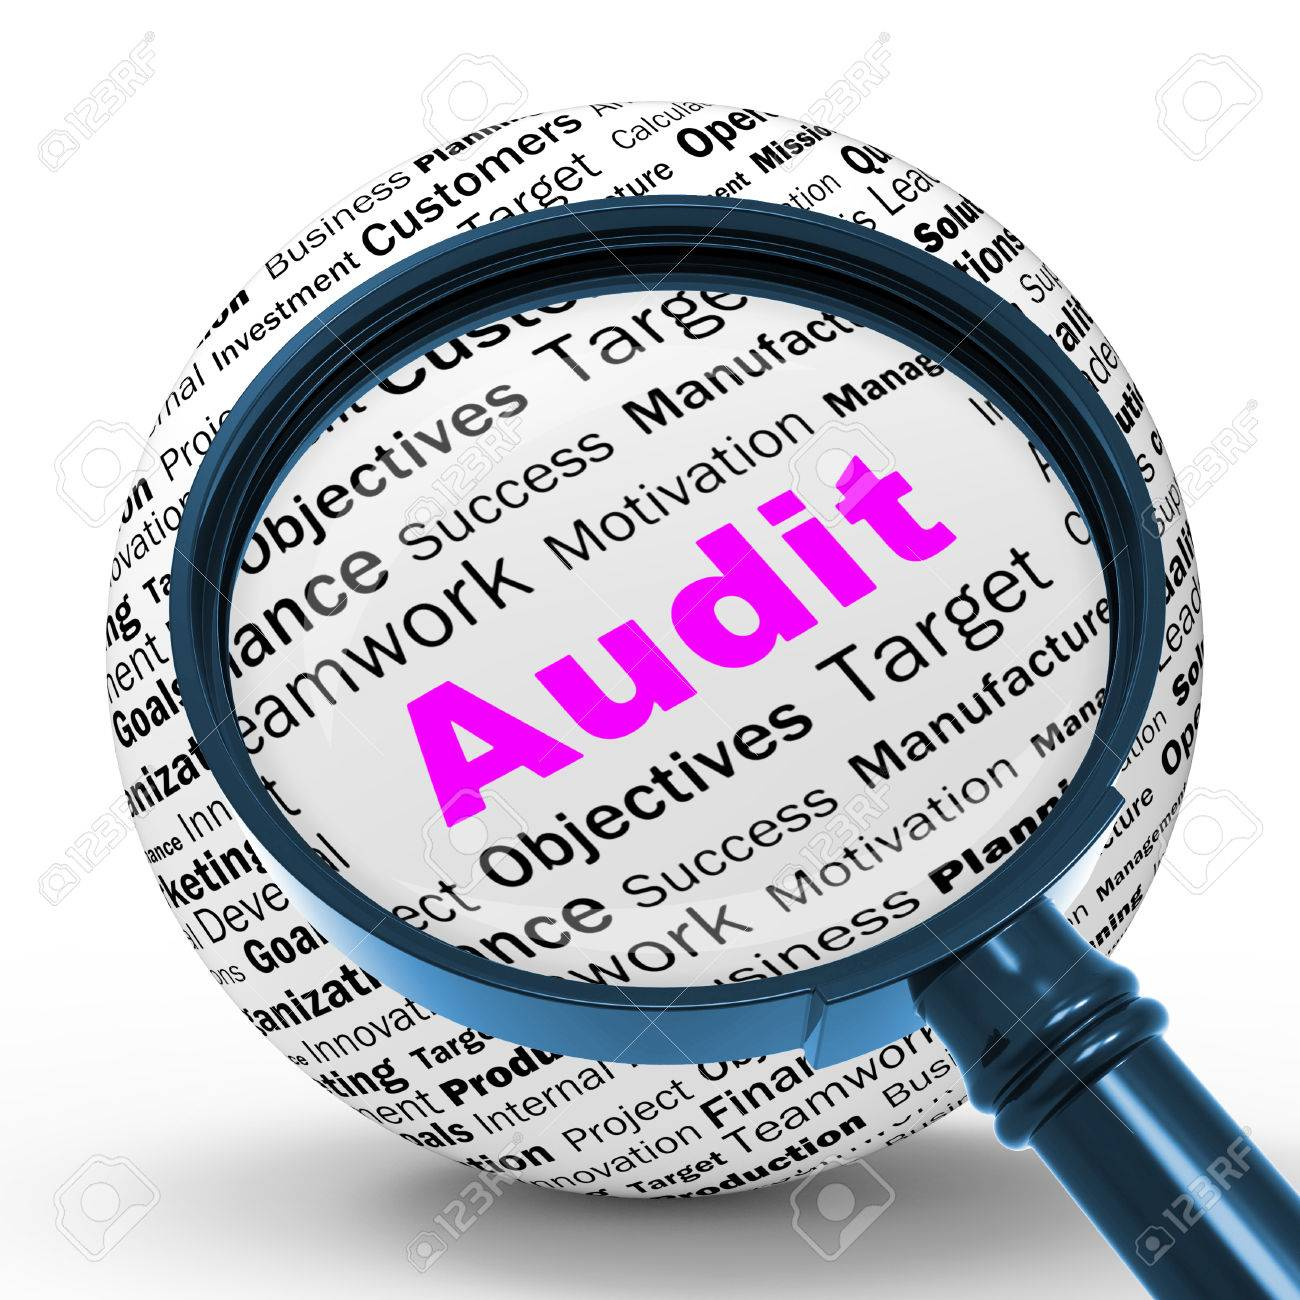 Image result for audit or inspection